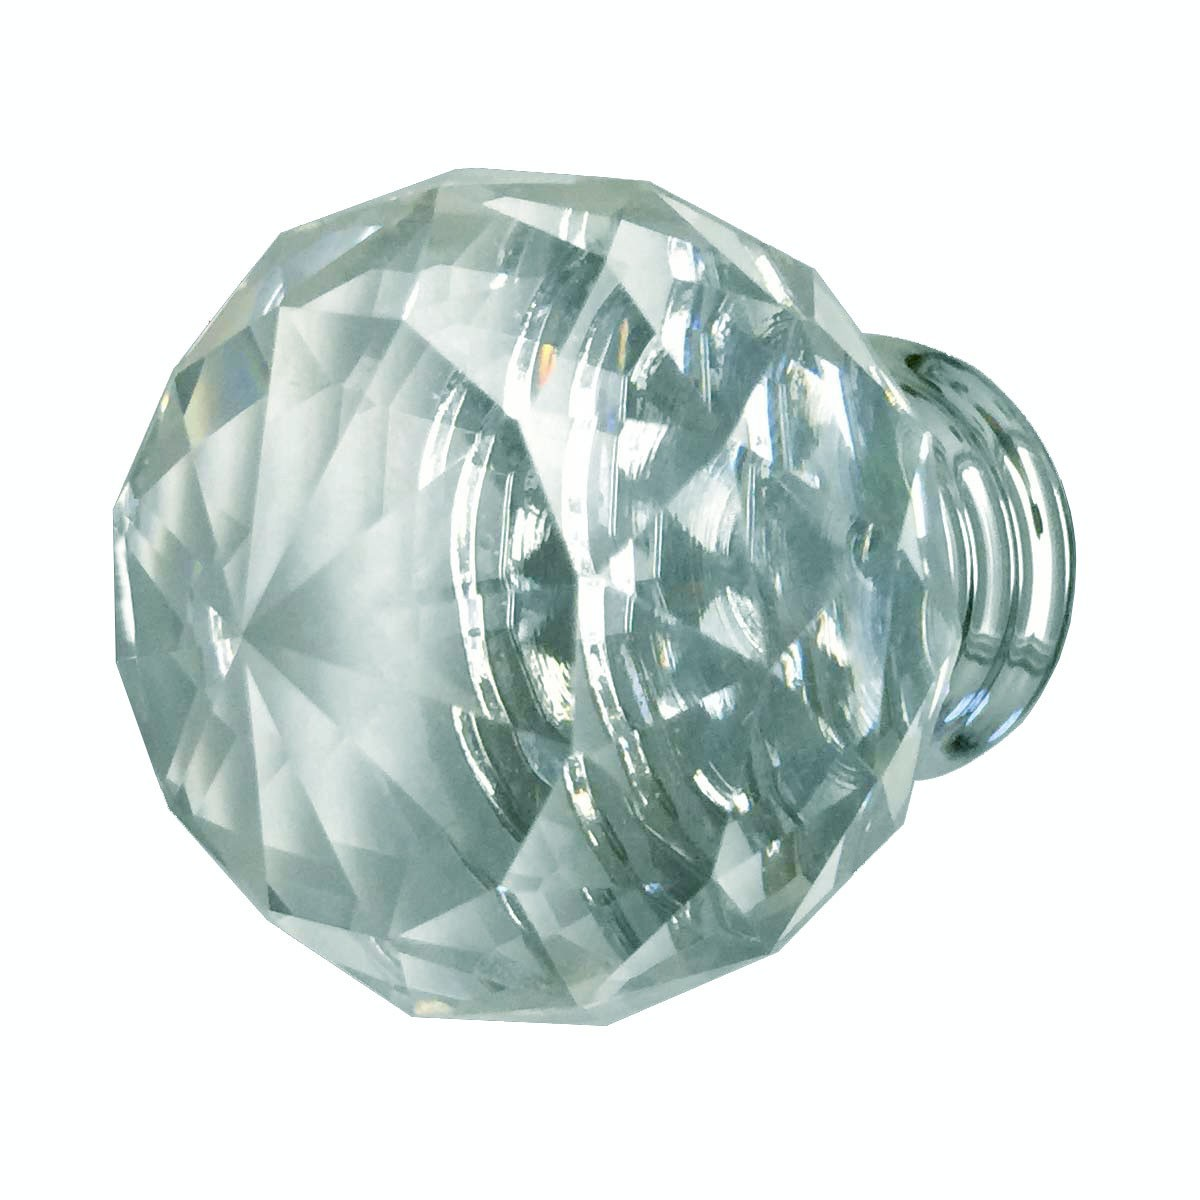 Clear Glass Cabinet Knobs 30mm Round, 1.5 inch projection 10 pcs Glass Cabinet Knobs Vintage Dresser Hardware Knobs Antique Cabinet Knobs